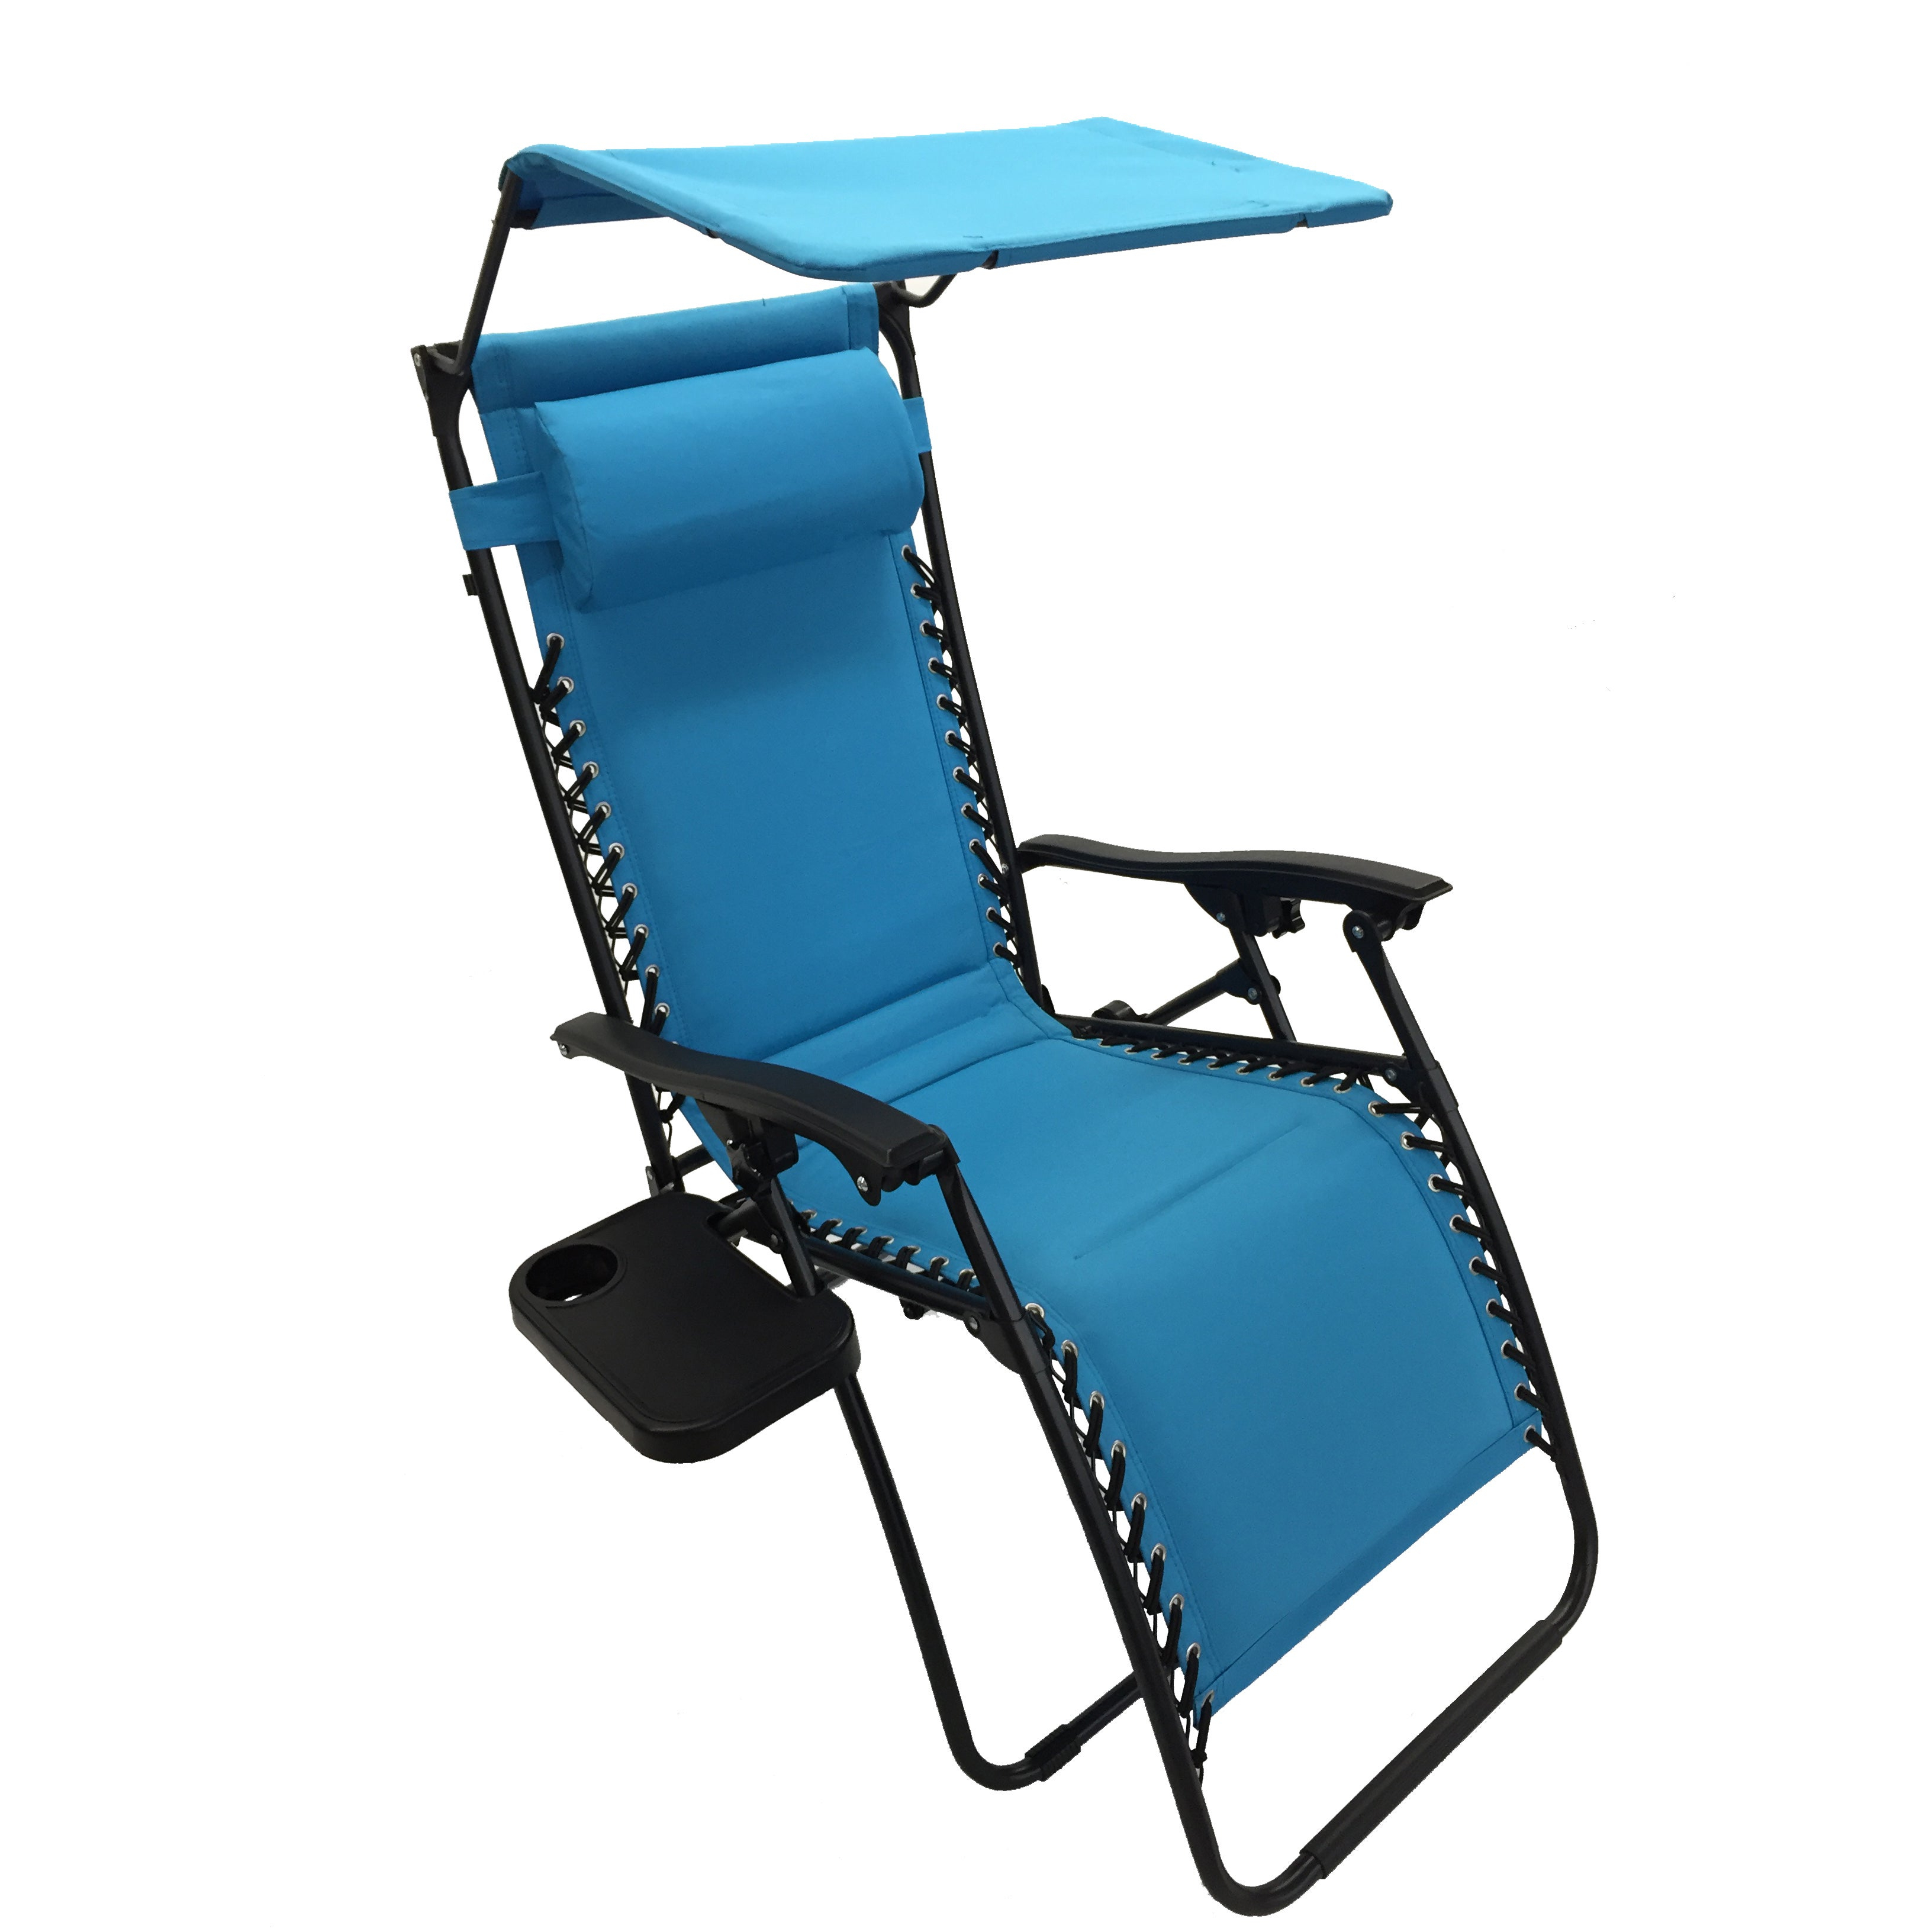 Deluxe Padded Chairs With Canopy And Tray Pertaining To Preferred Styled Shopping Deluxe Padded Zero Gravity Chair With Canopy And Tray (View 5 of 25)